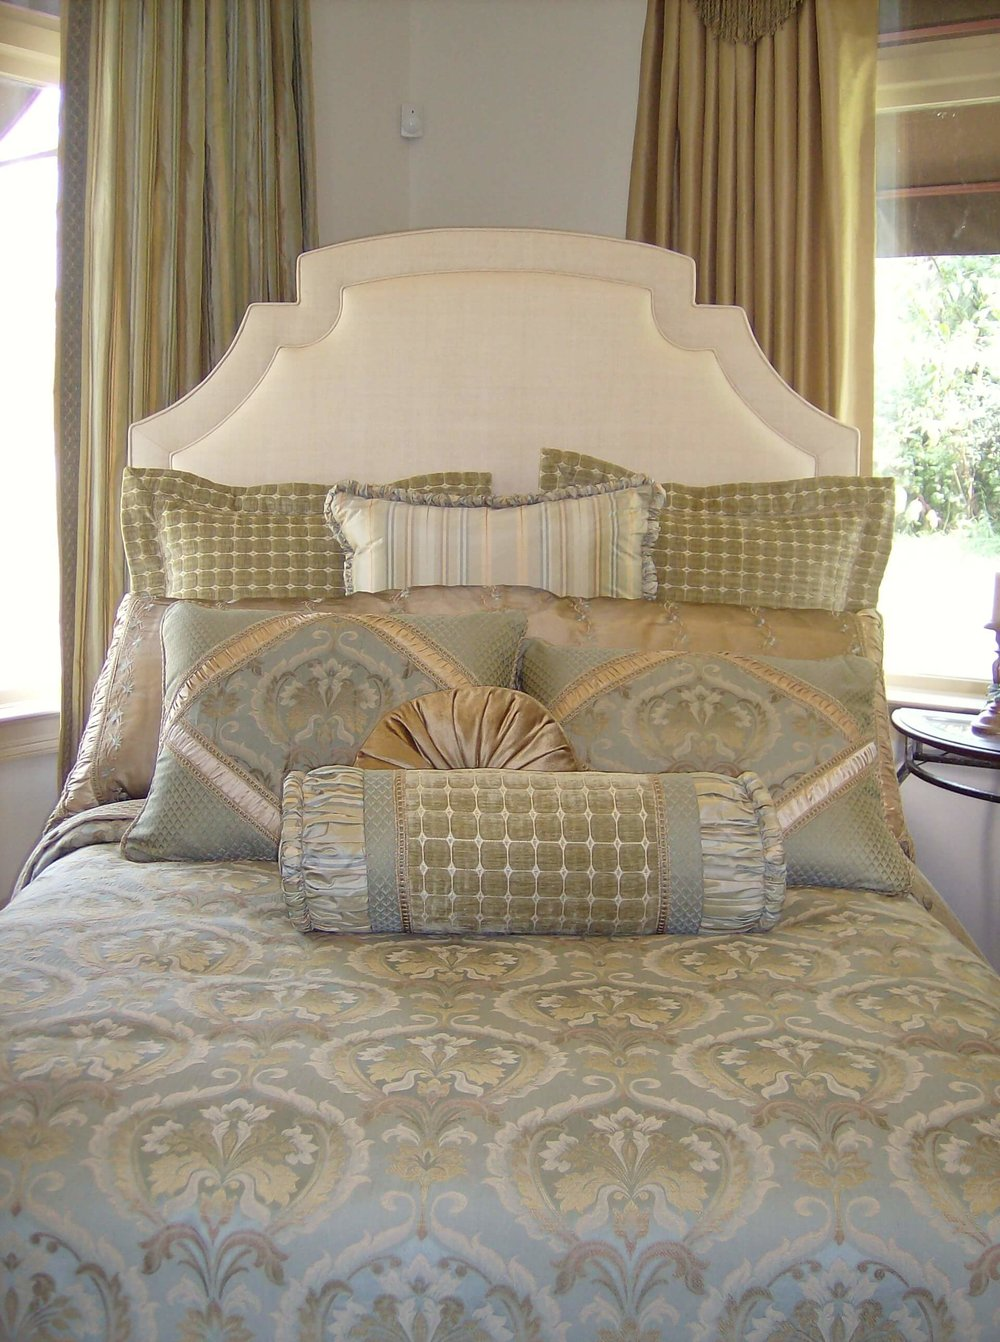 custom-bedding-linens-fabric-atlanta-georgia-5.JPG